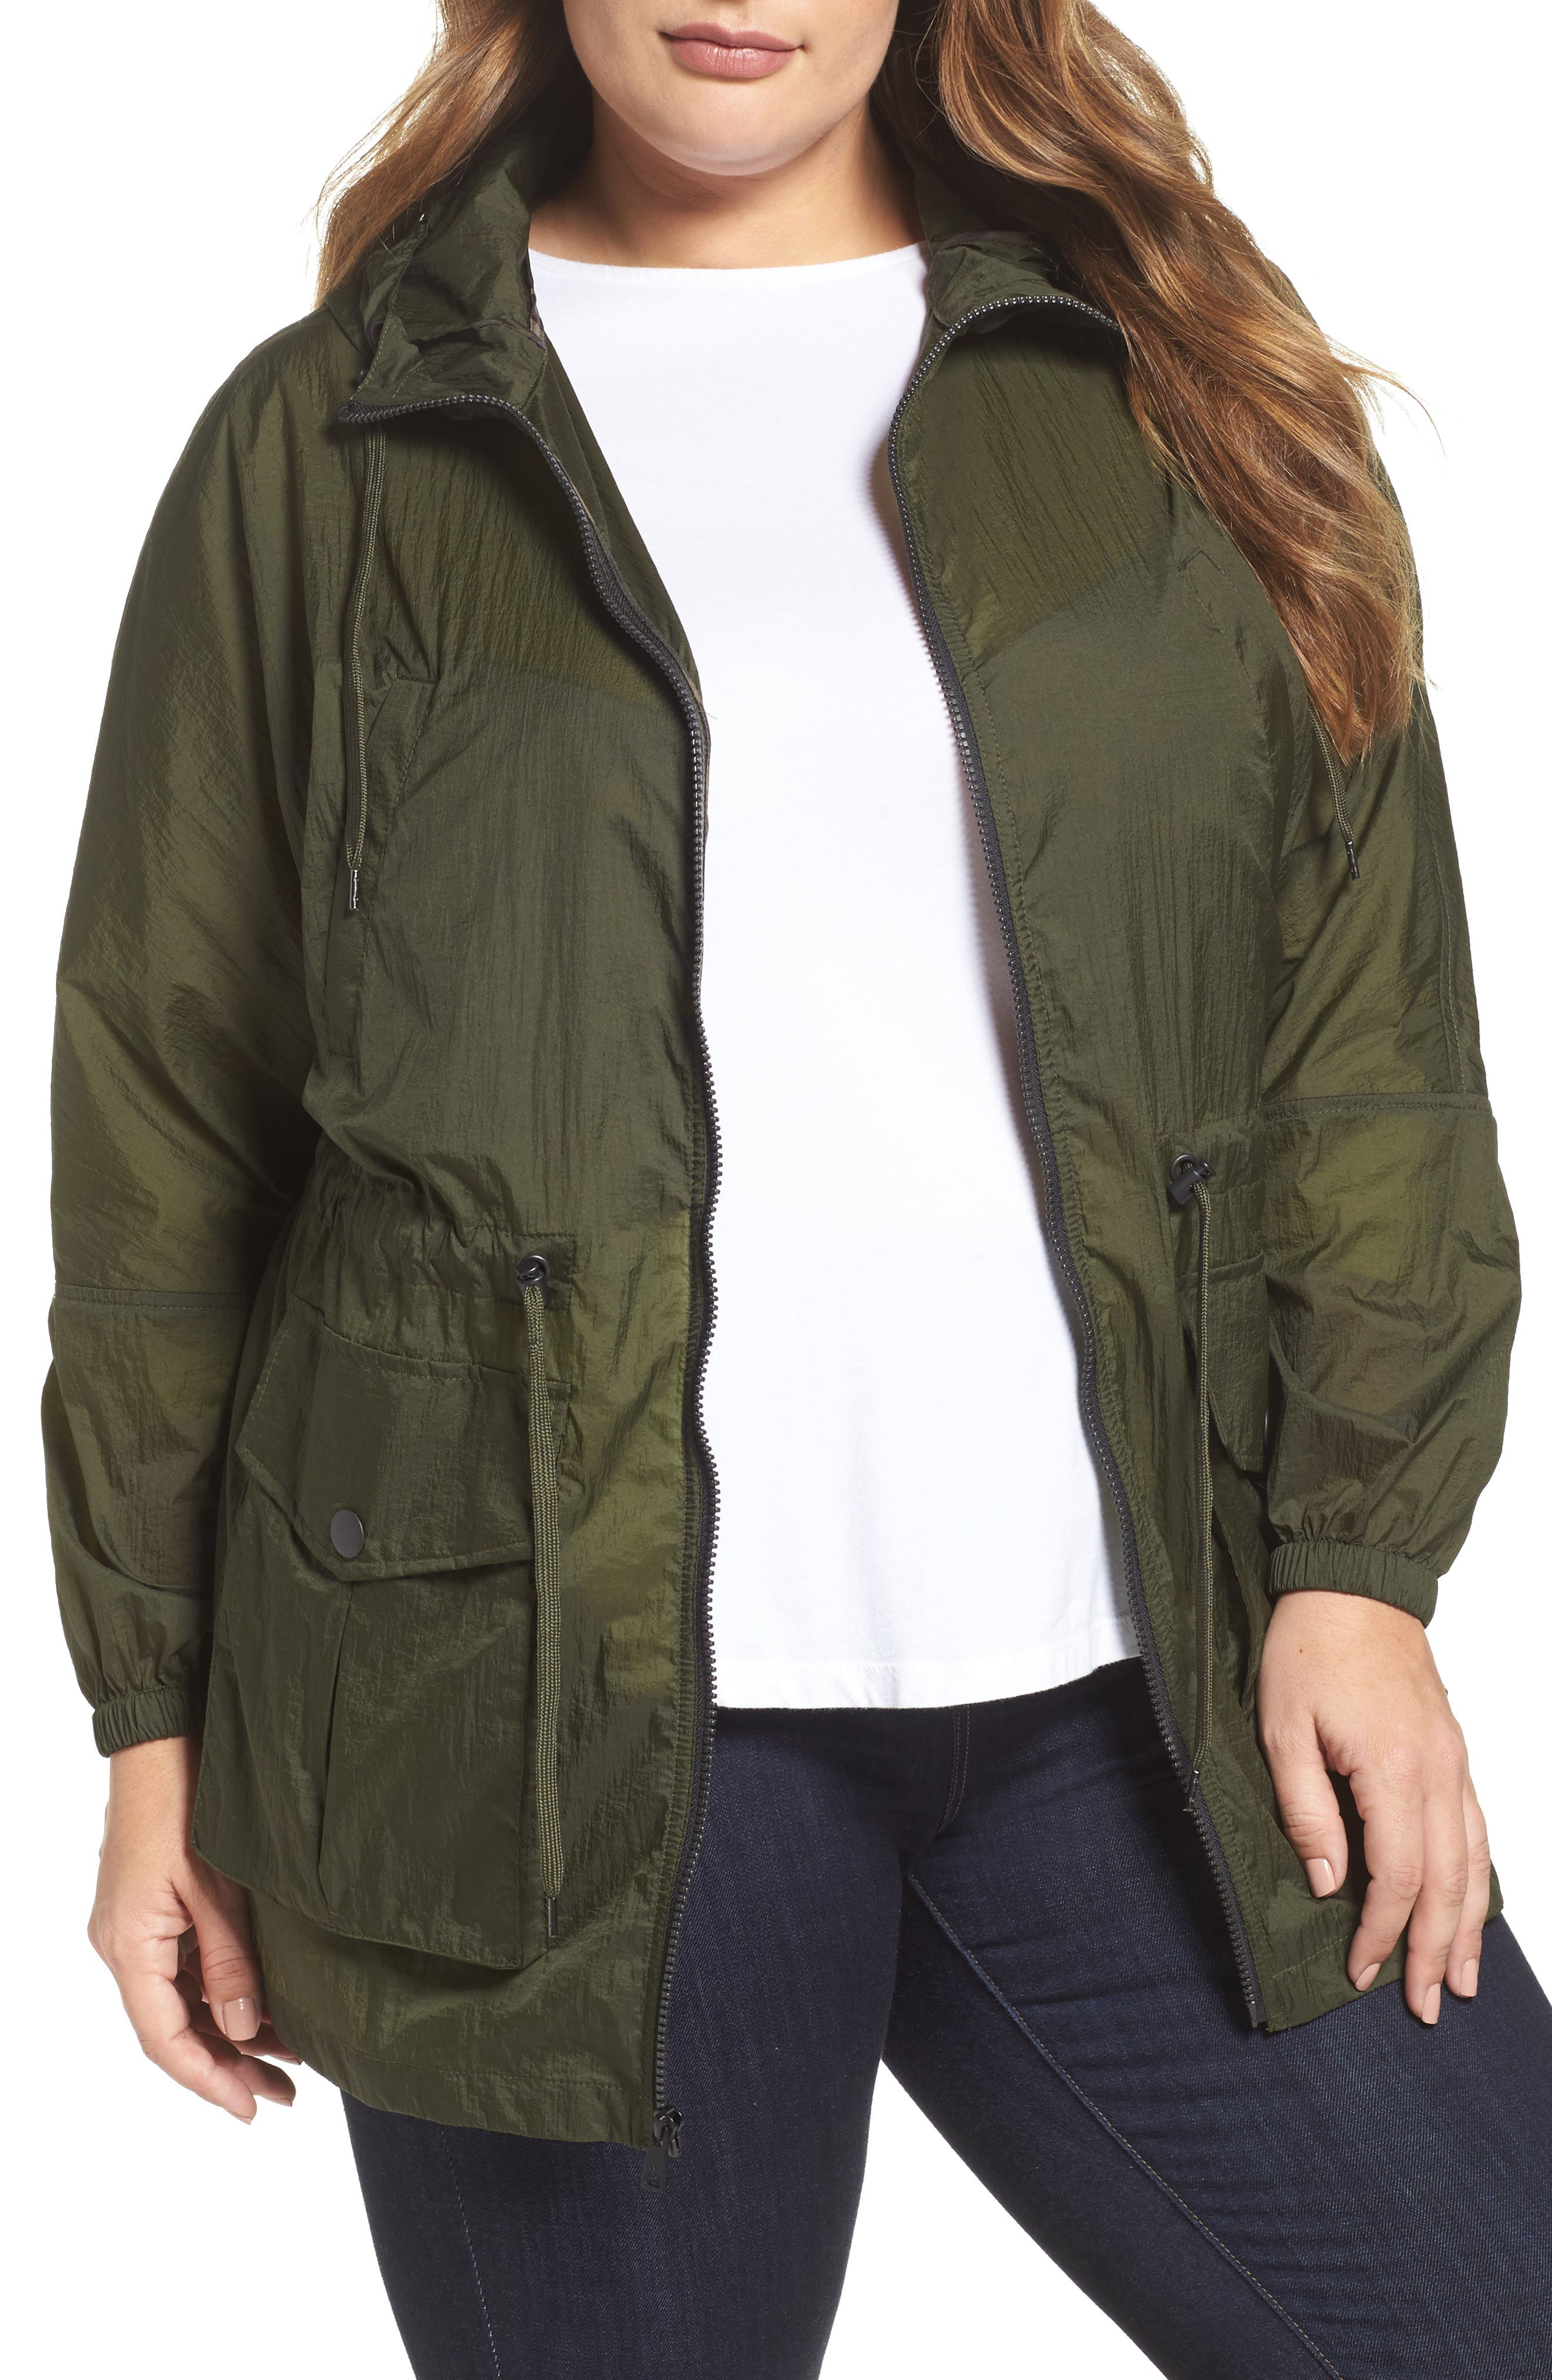 Hooded Windbreaker,                             Main thumbnail 1, color,                             Army Green